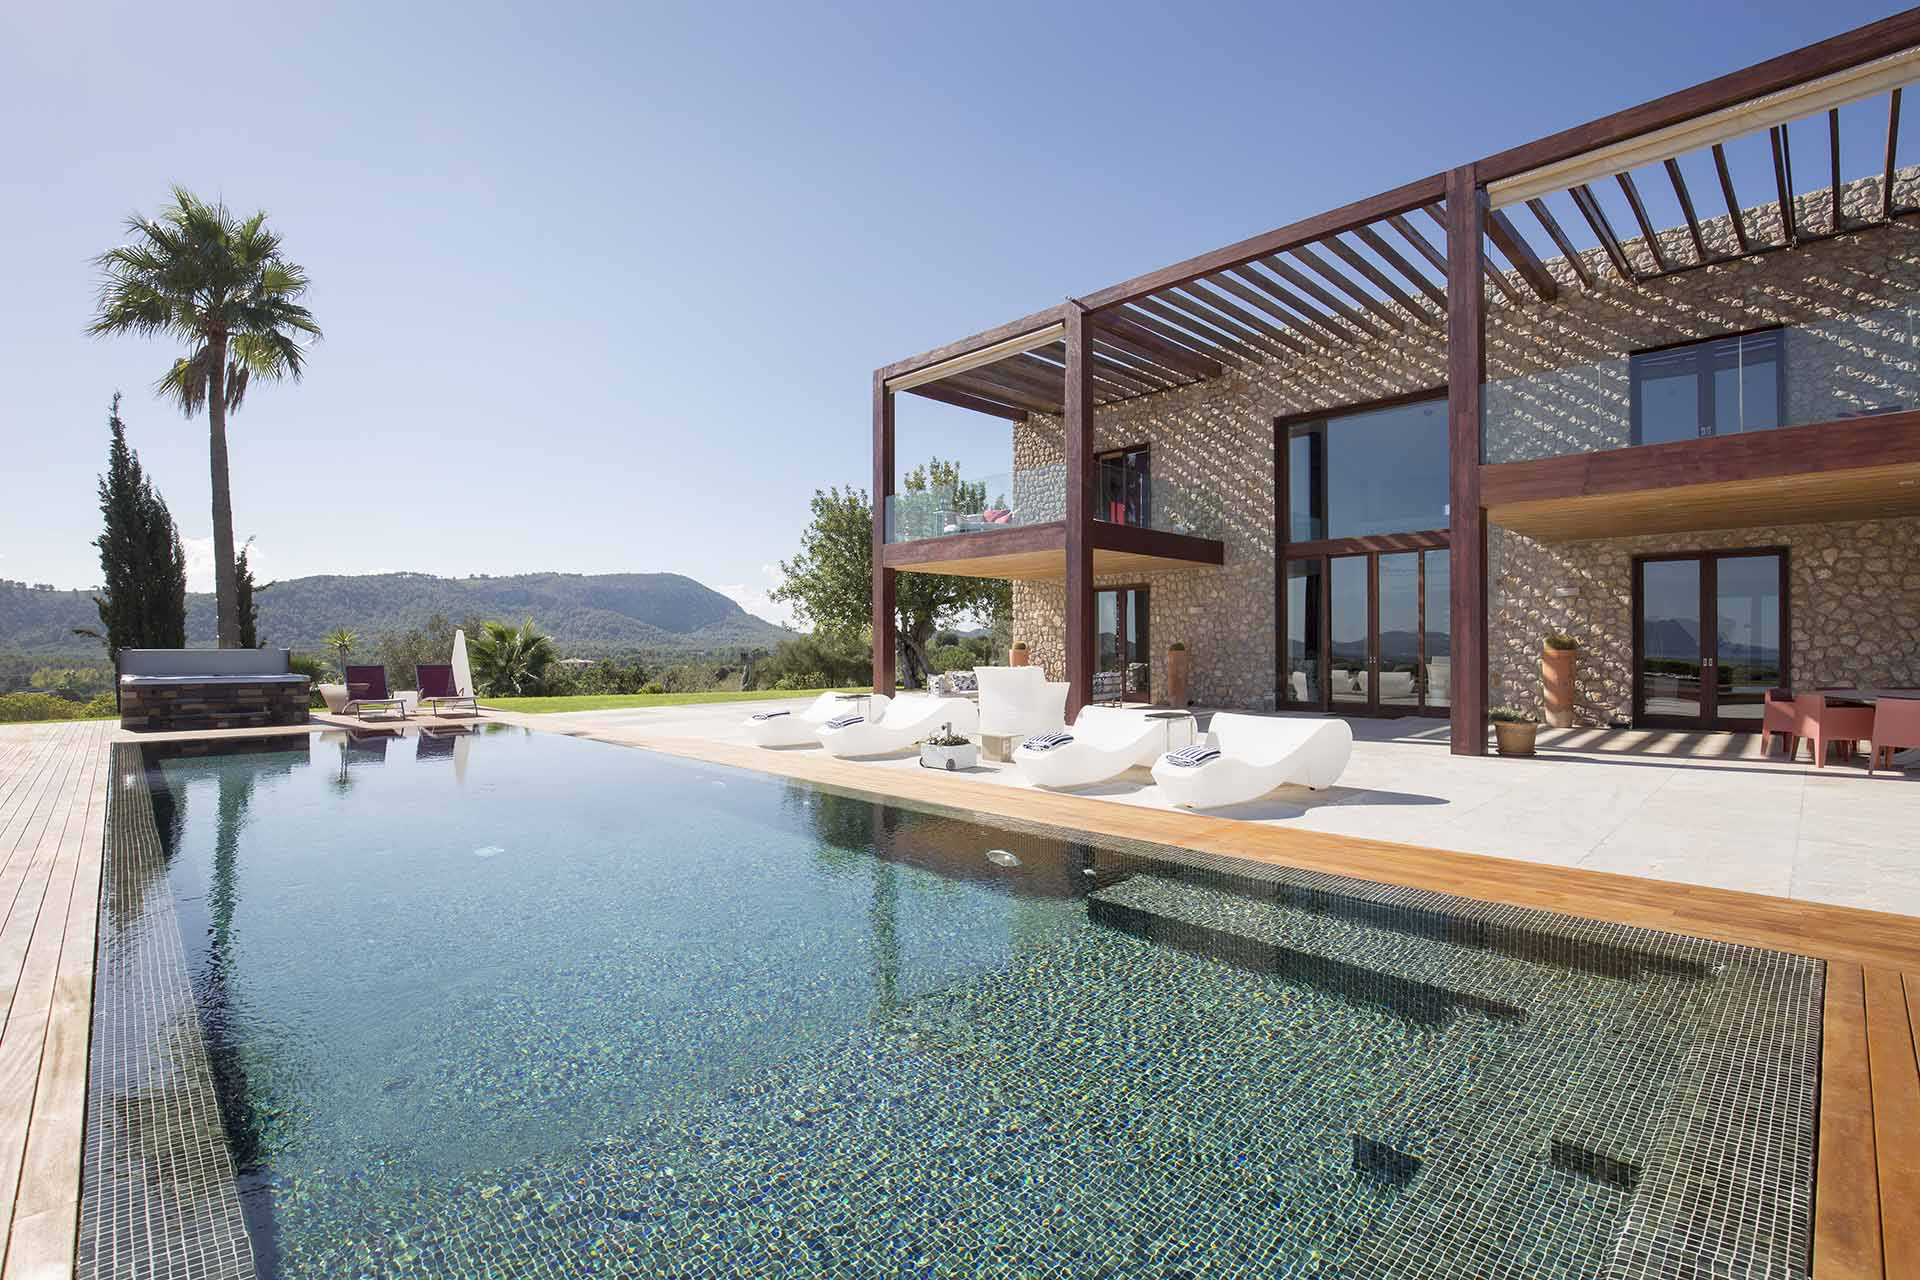 Large and luxurious villa in the north of the island of Mallorca, Puerto Pollensa